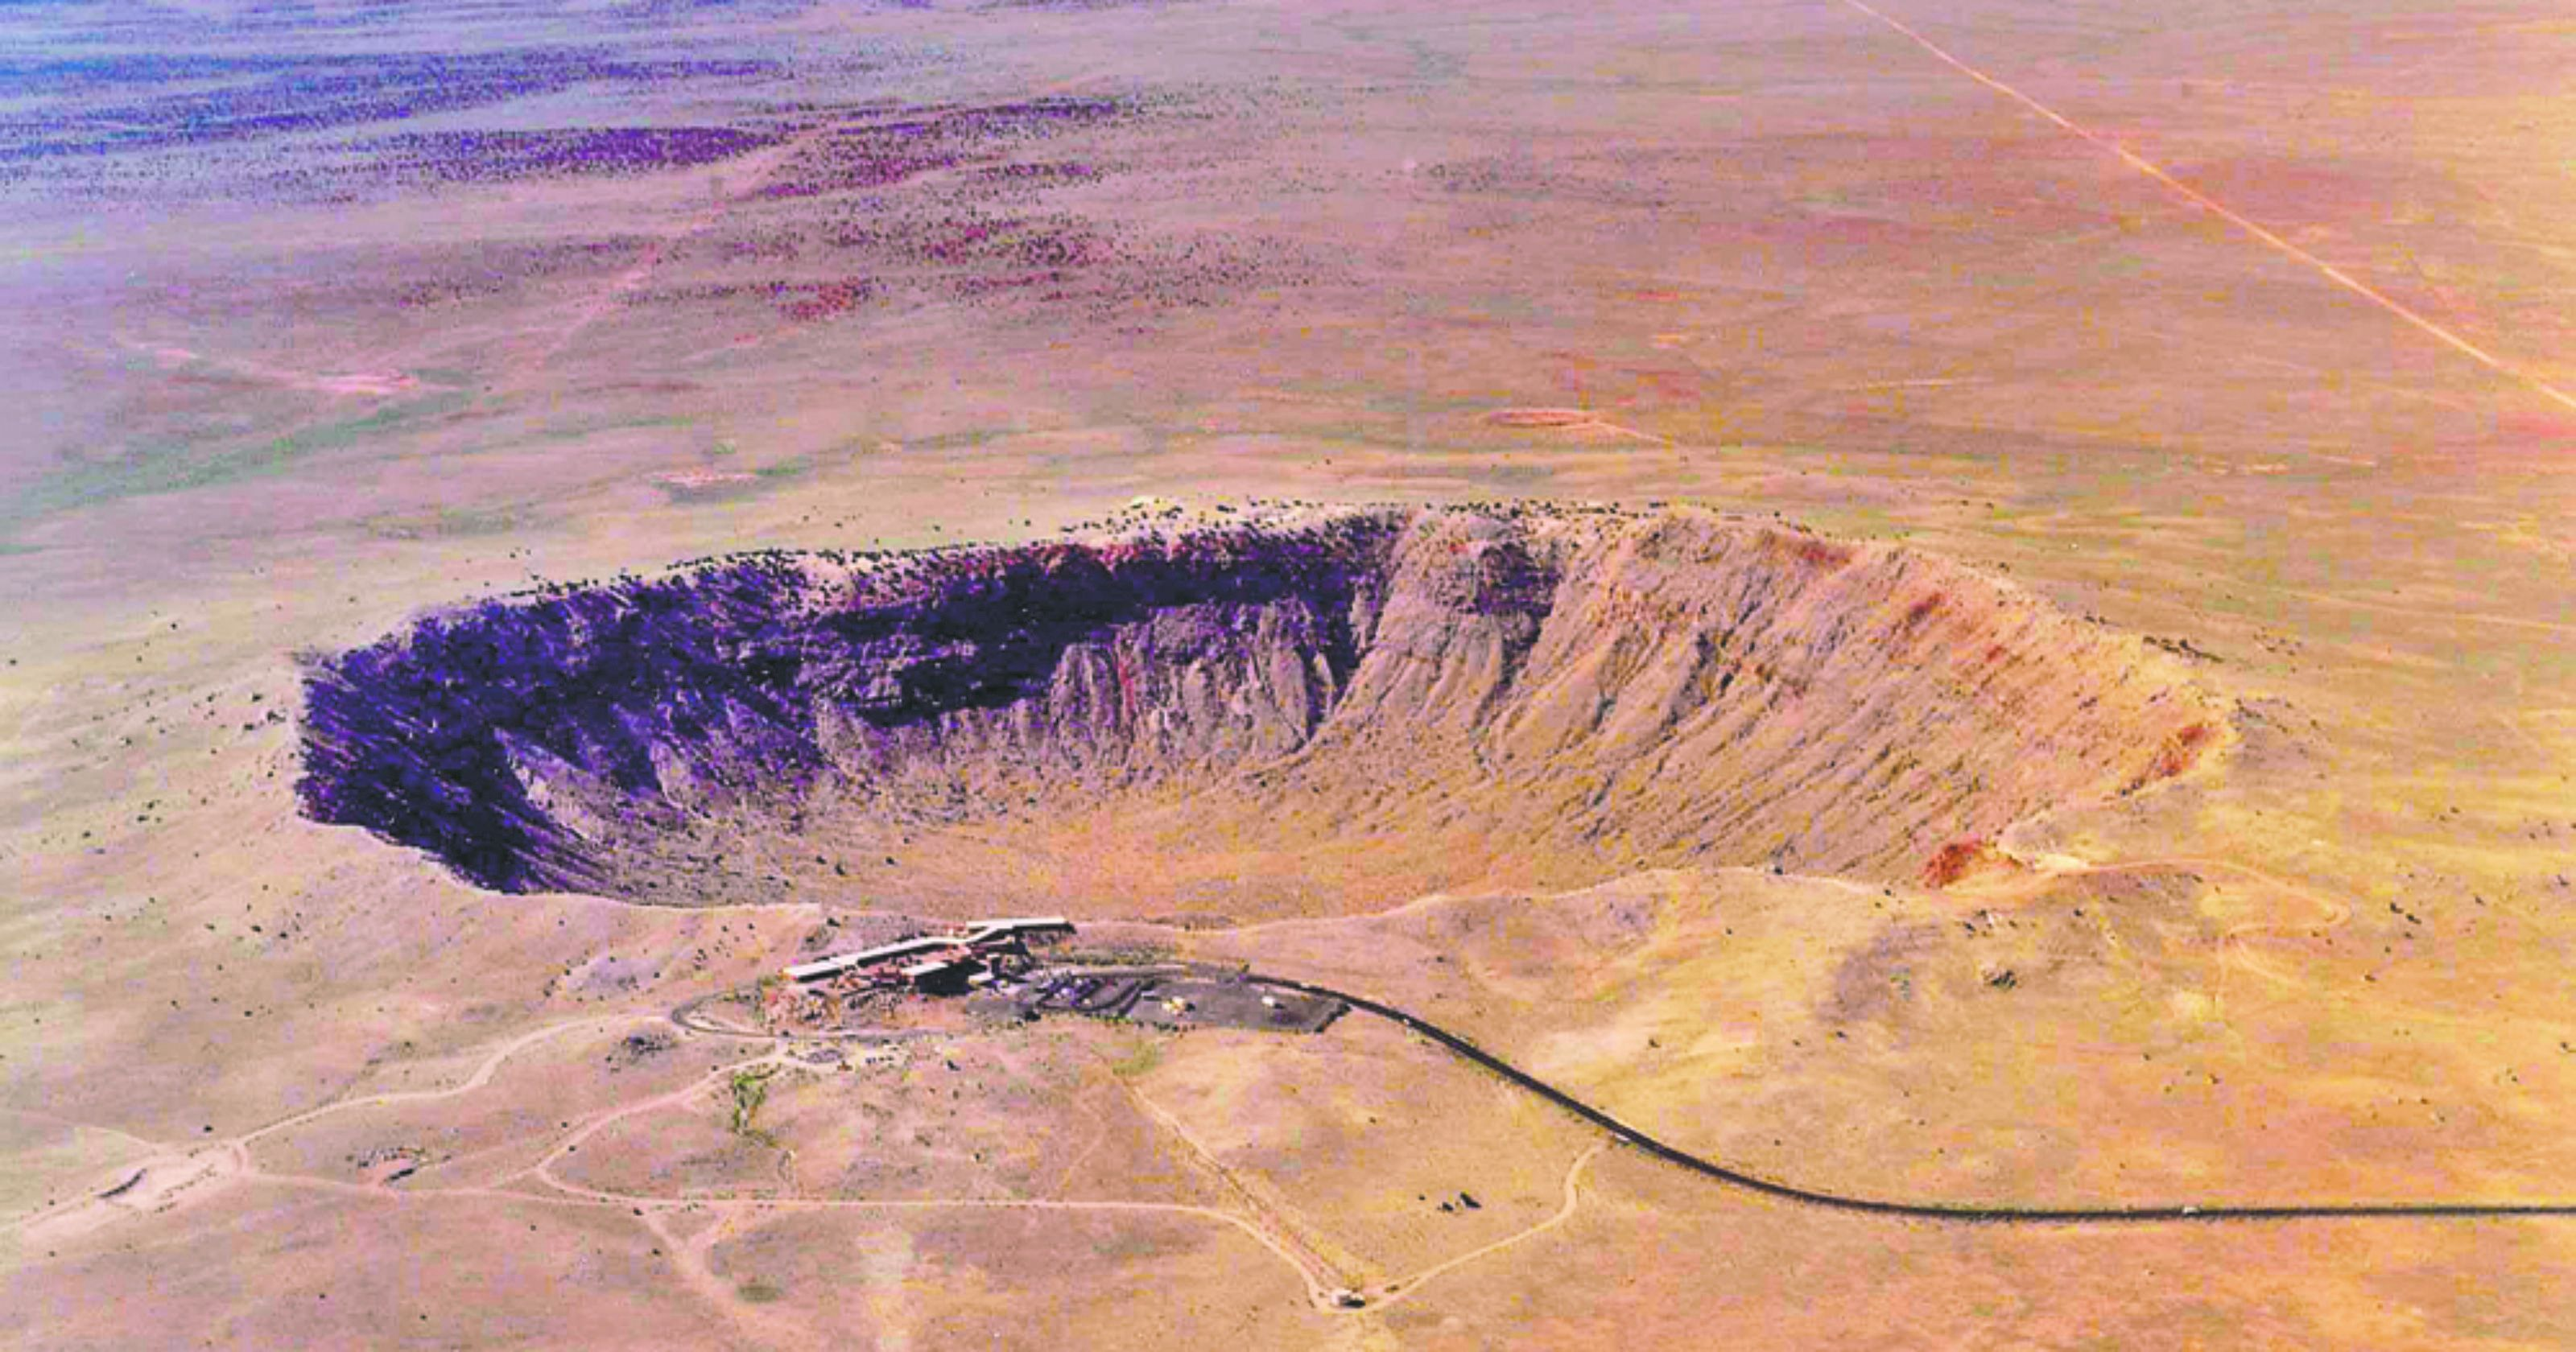 636404742115100135-meteor-crater-aerial-